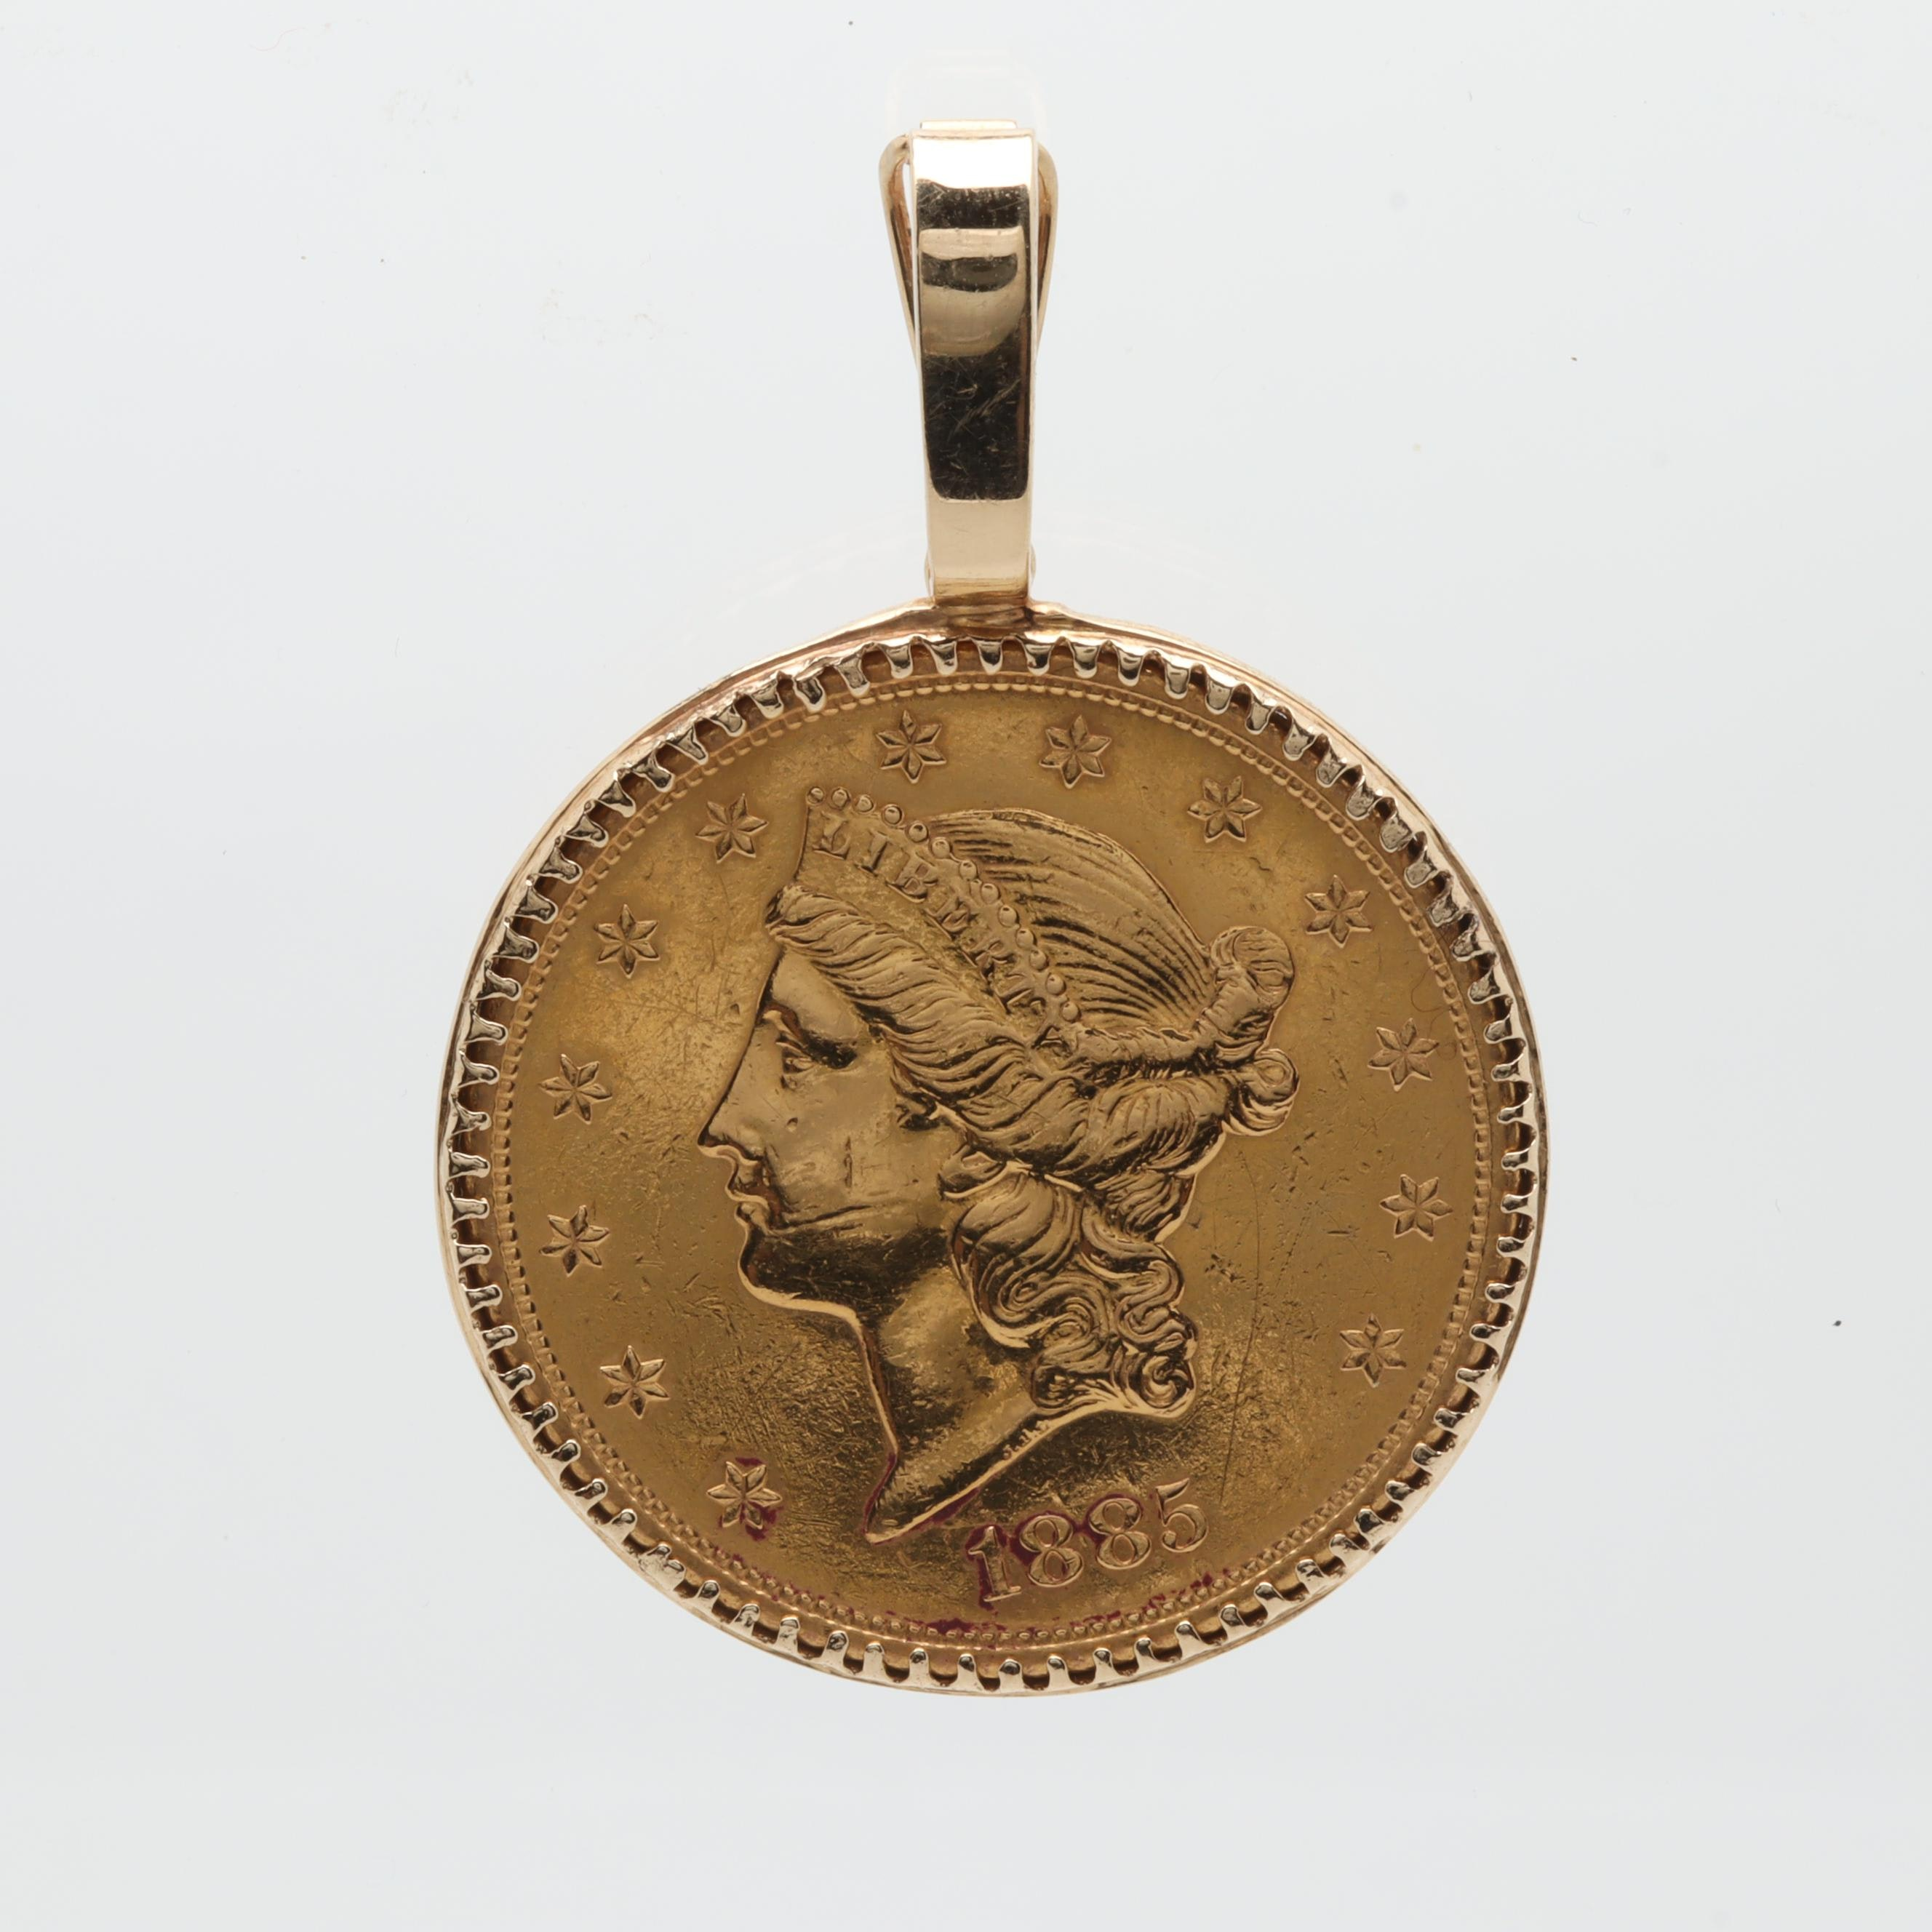 14K Yellow Gold Pendant with 1885-S Liberty Head $20 Gold Coin